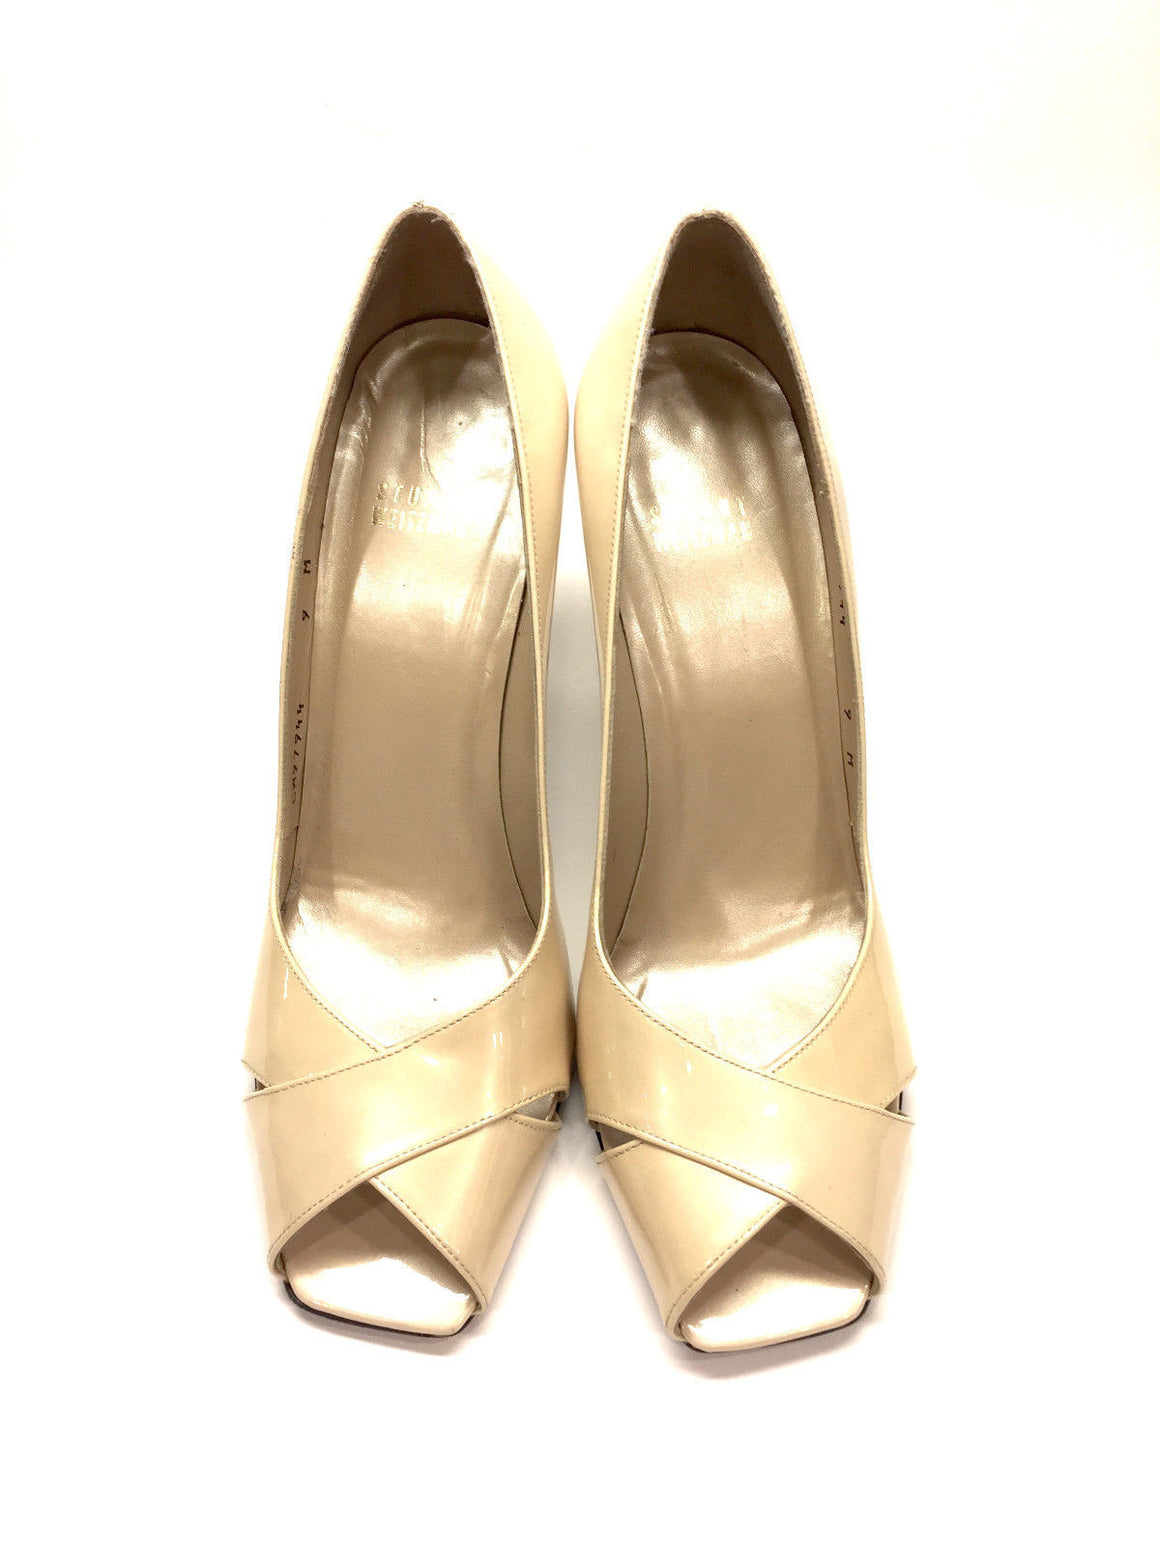 bisbiz.com STUART WEITZMAN Ivory Patent Leather Open-Toe Pumps | 9M - Bis Luxury Resale